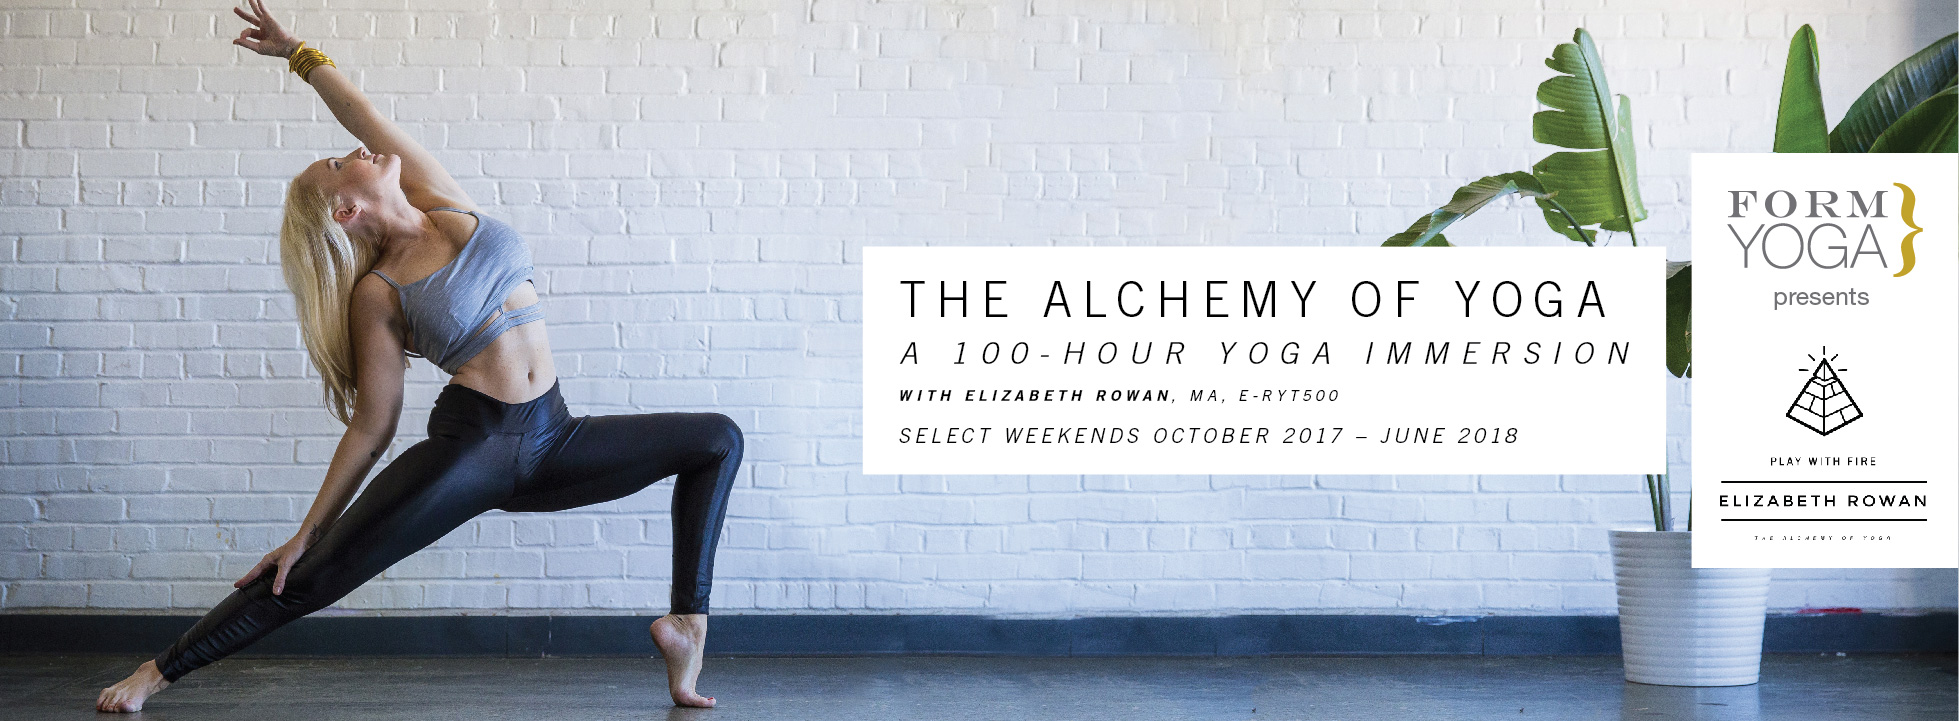 The Alchemy of Yoga: A 100 - Hour Yoga Immersion